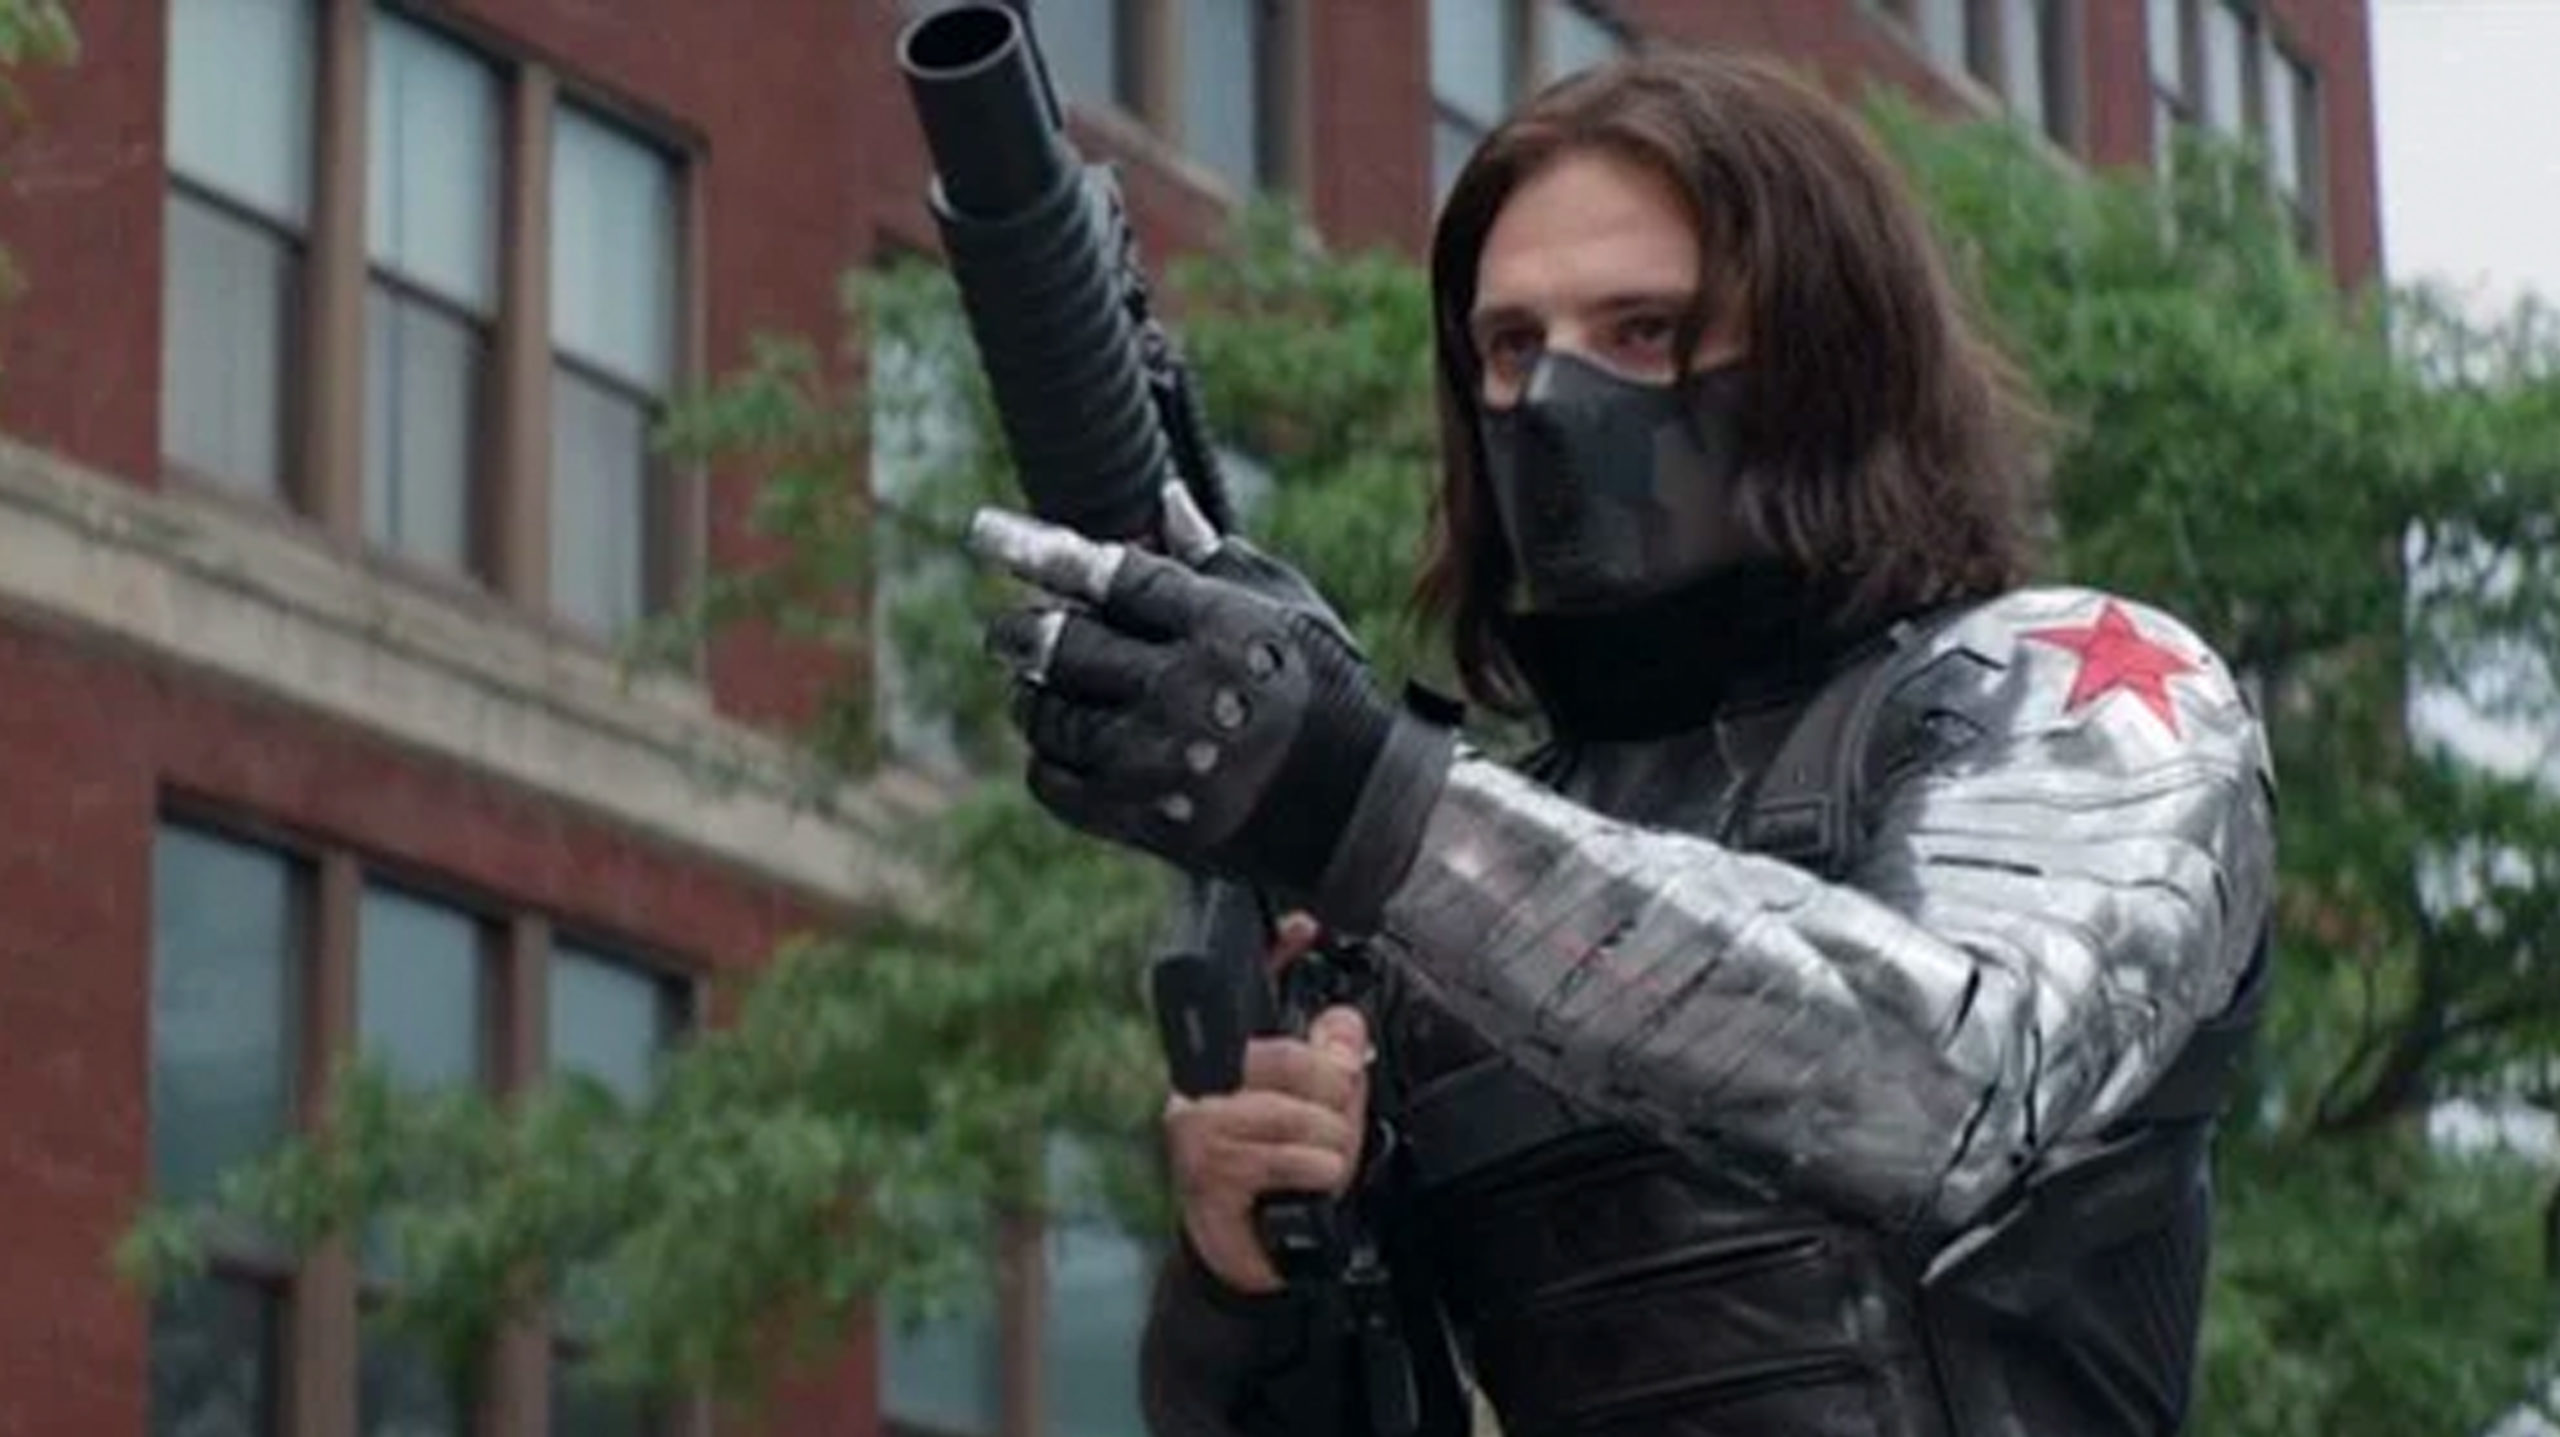 The Winter Soldier - HYDRA Outfit